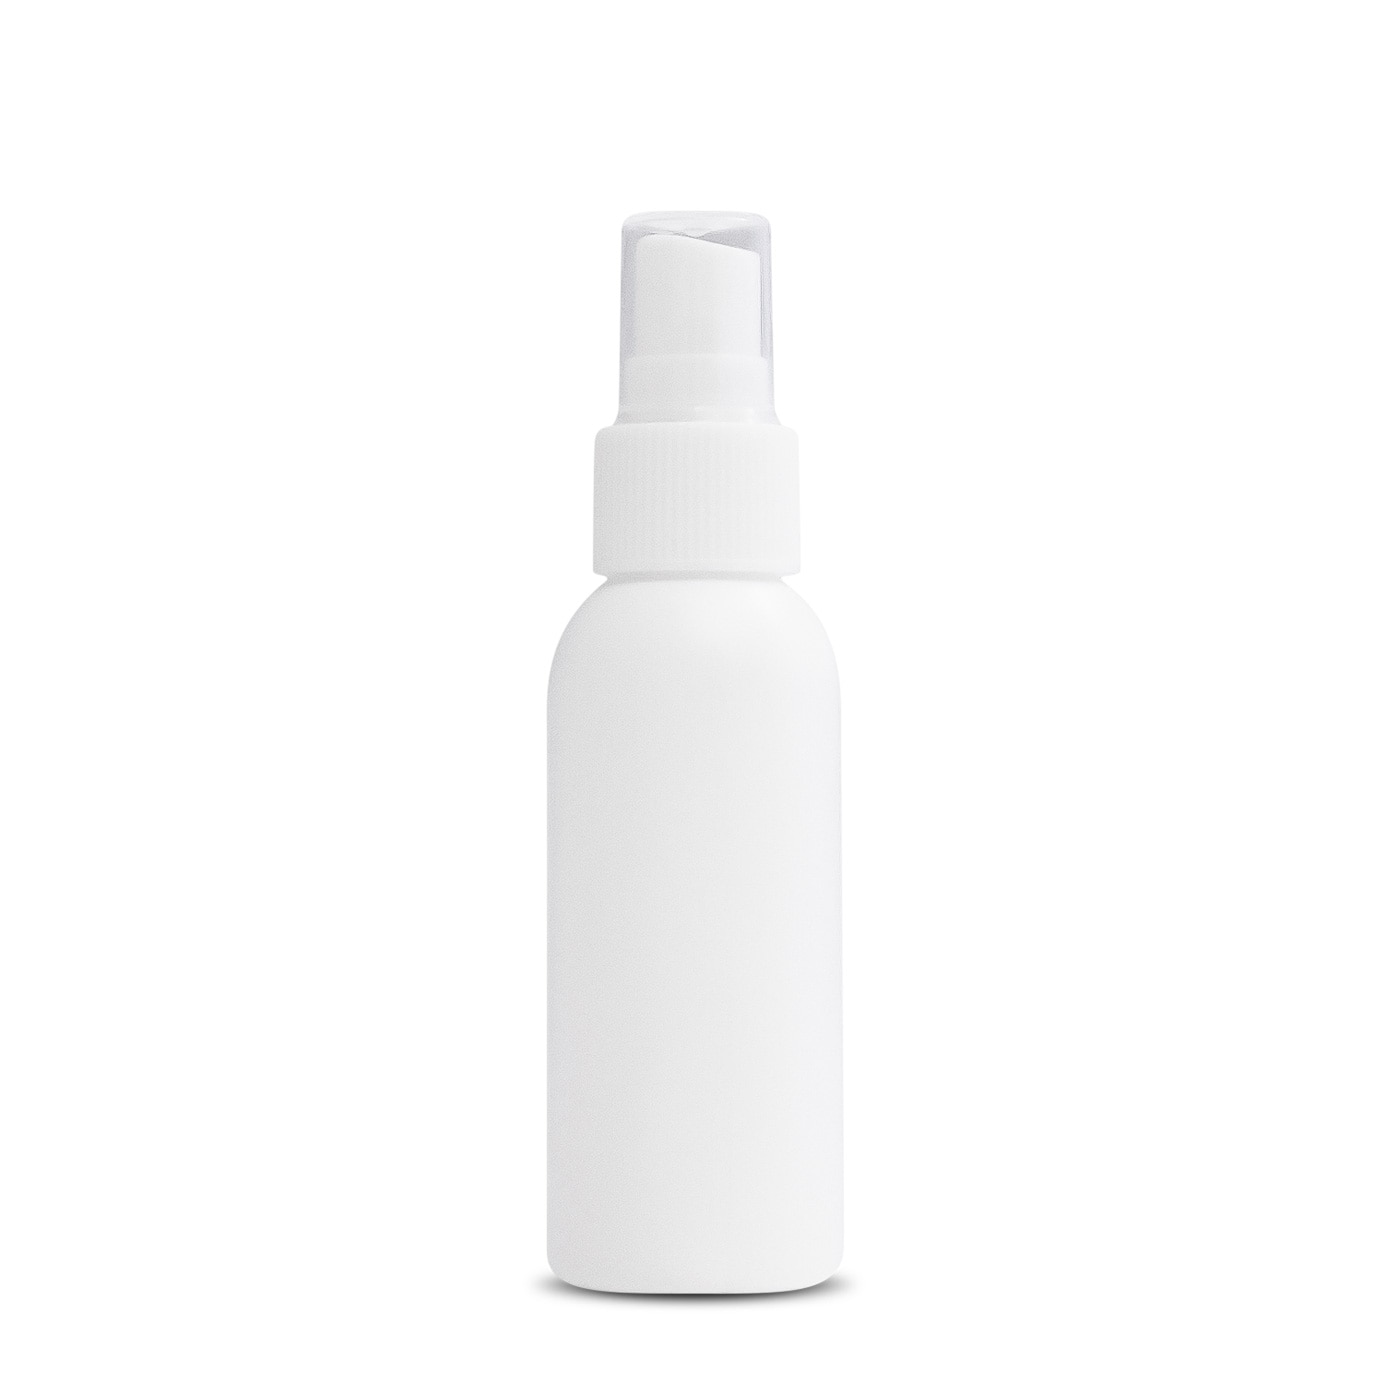 Better You - Sprayflaska 30 ml inkl. 2 st etiketter